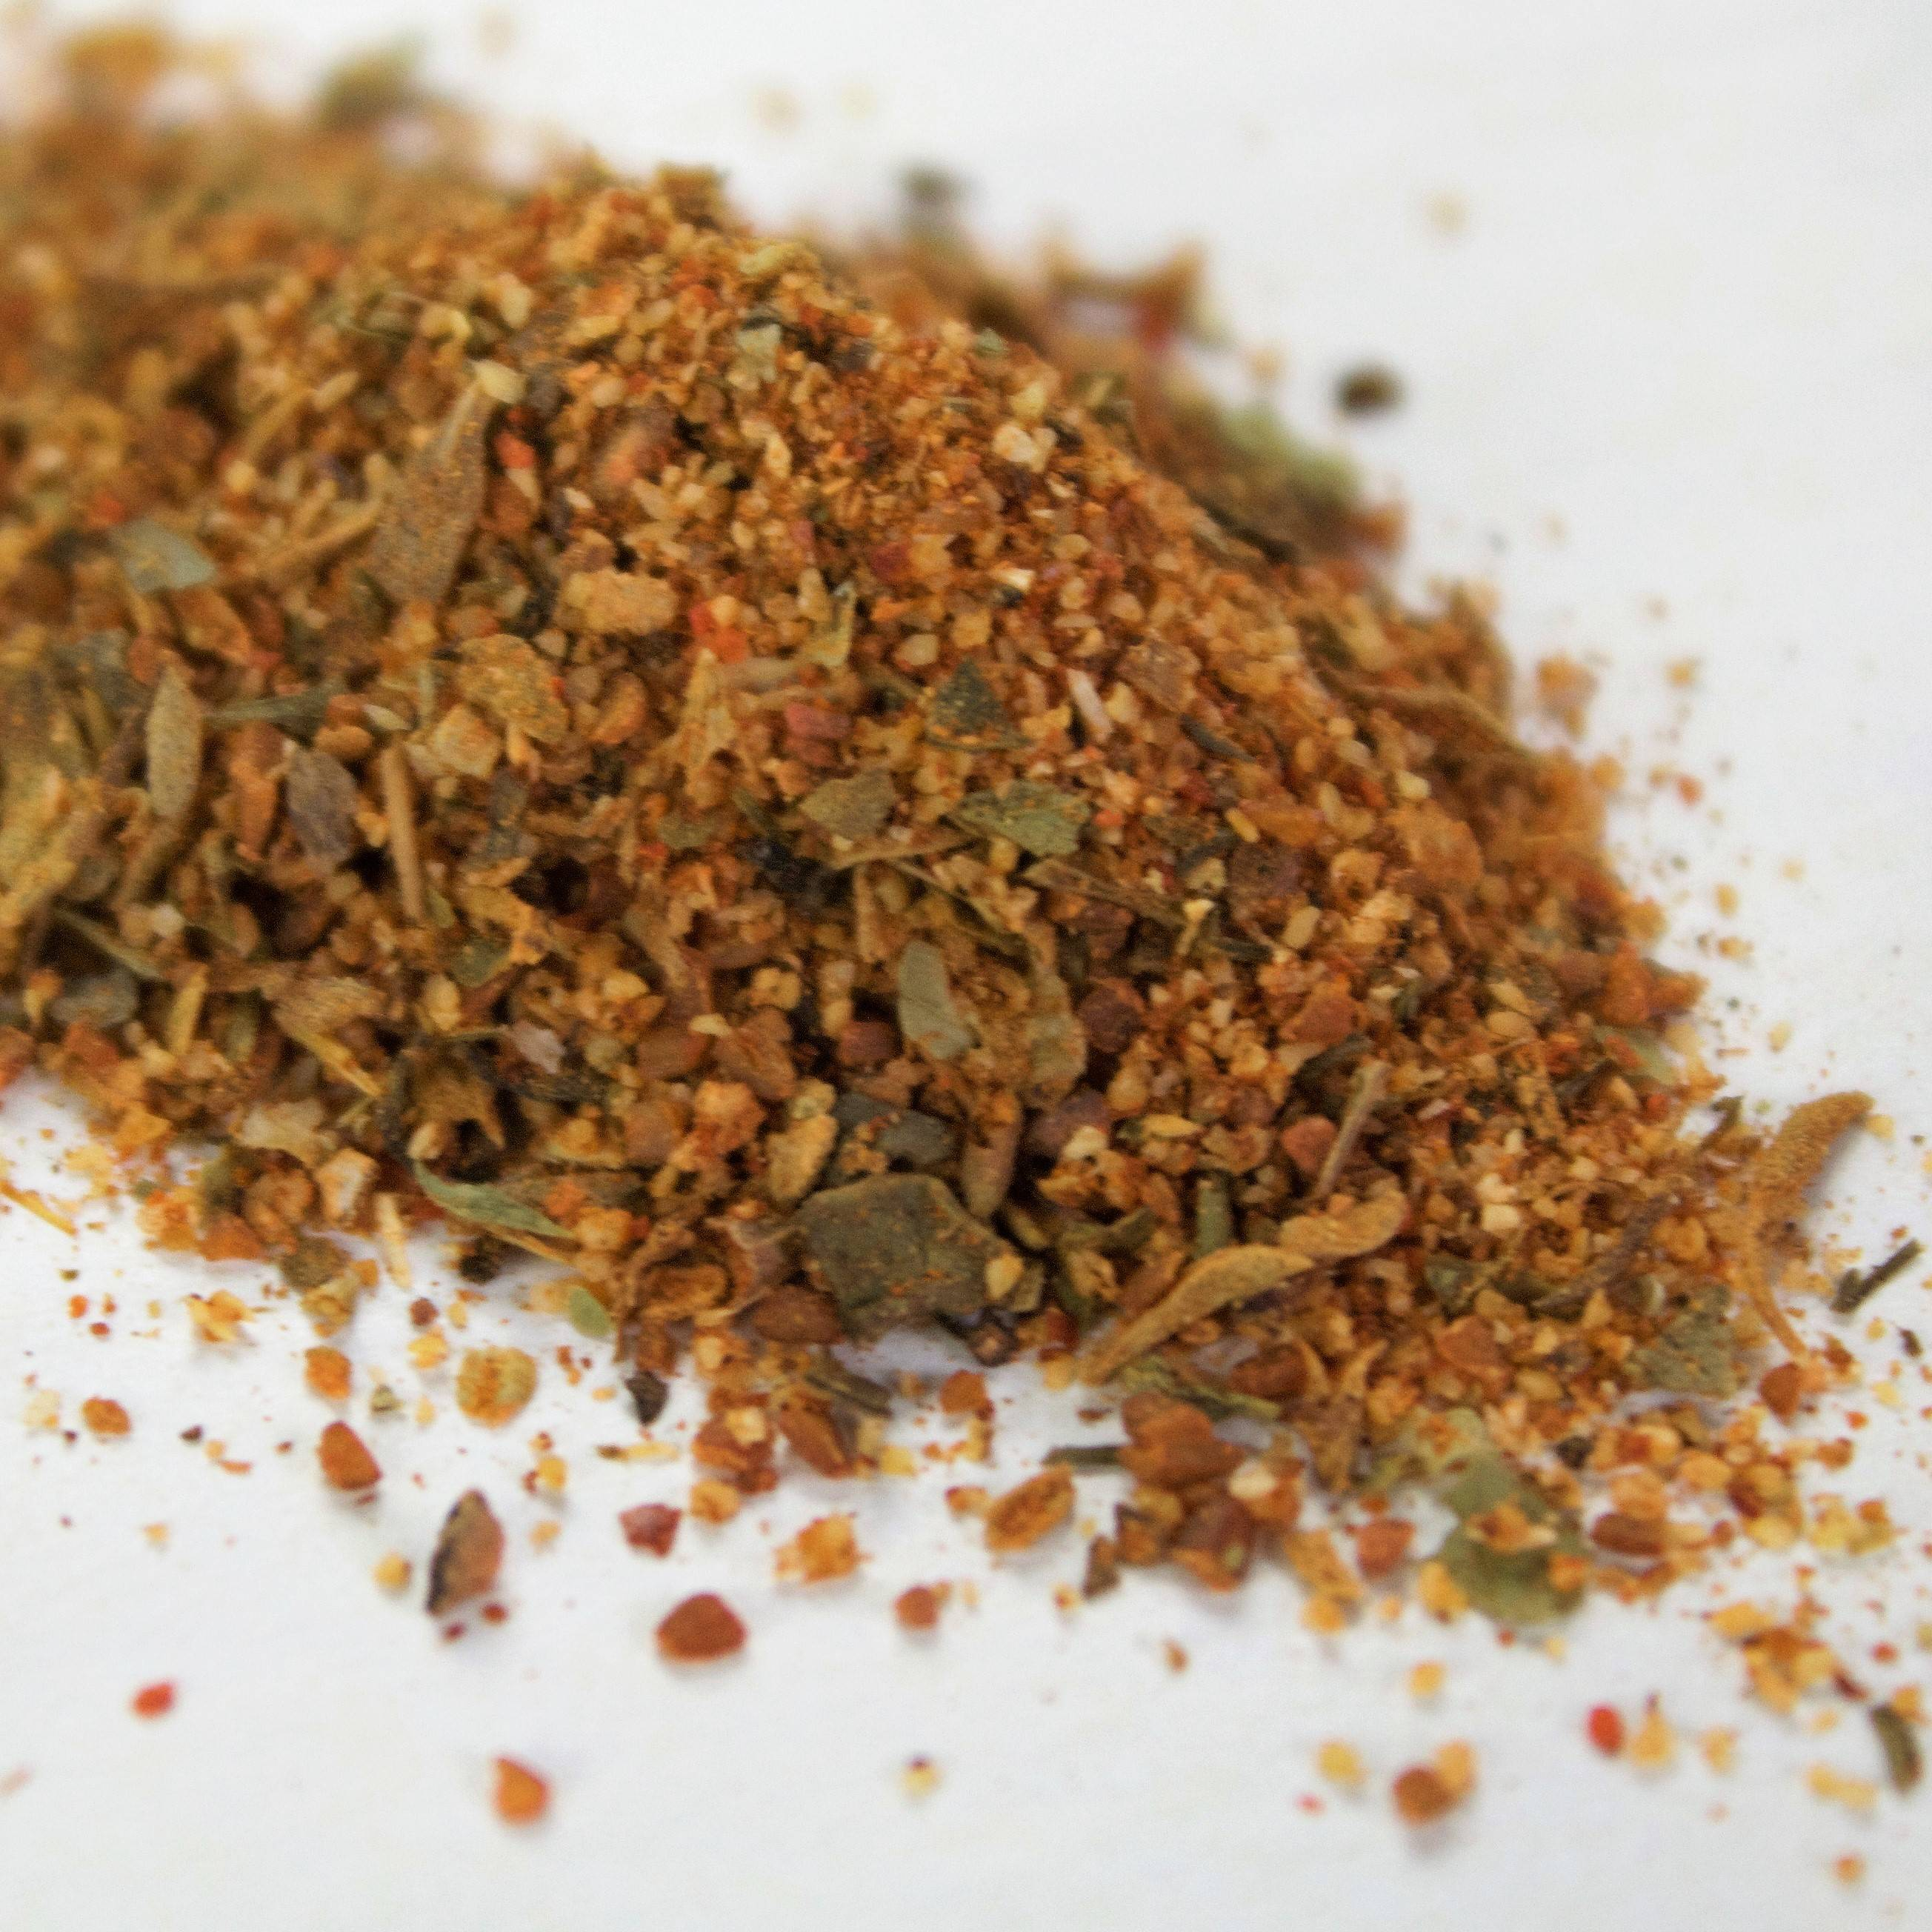 Organic Spicy All-Purpose Spice Blend